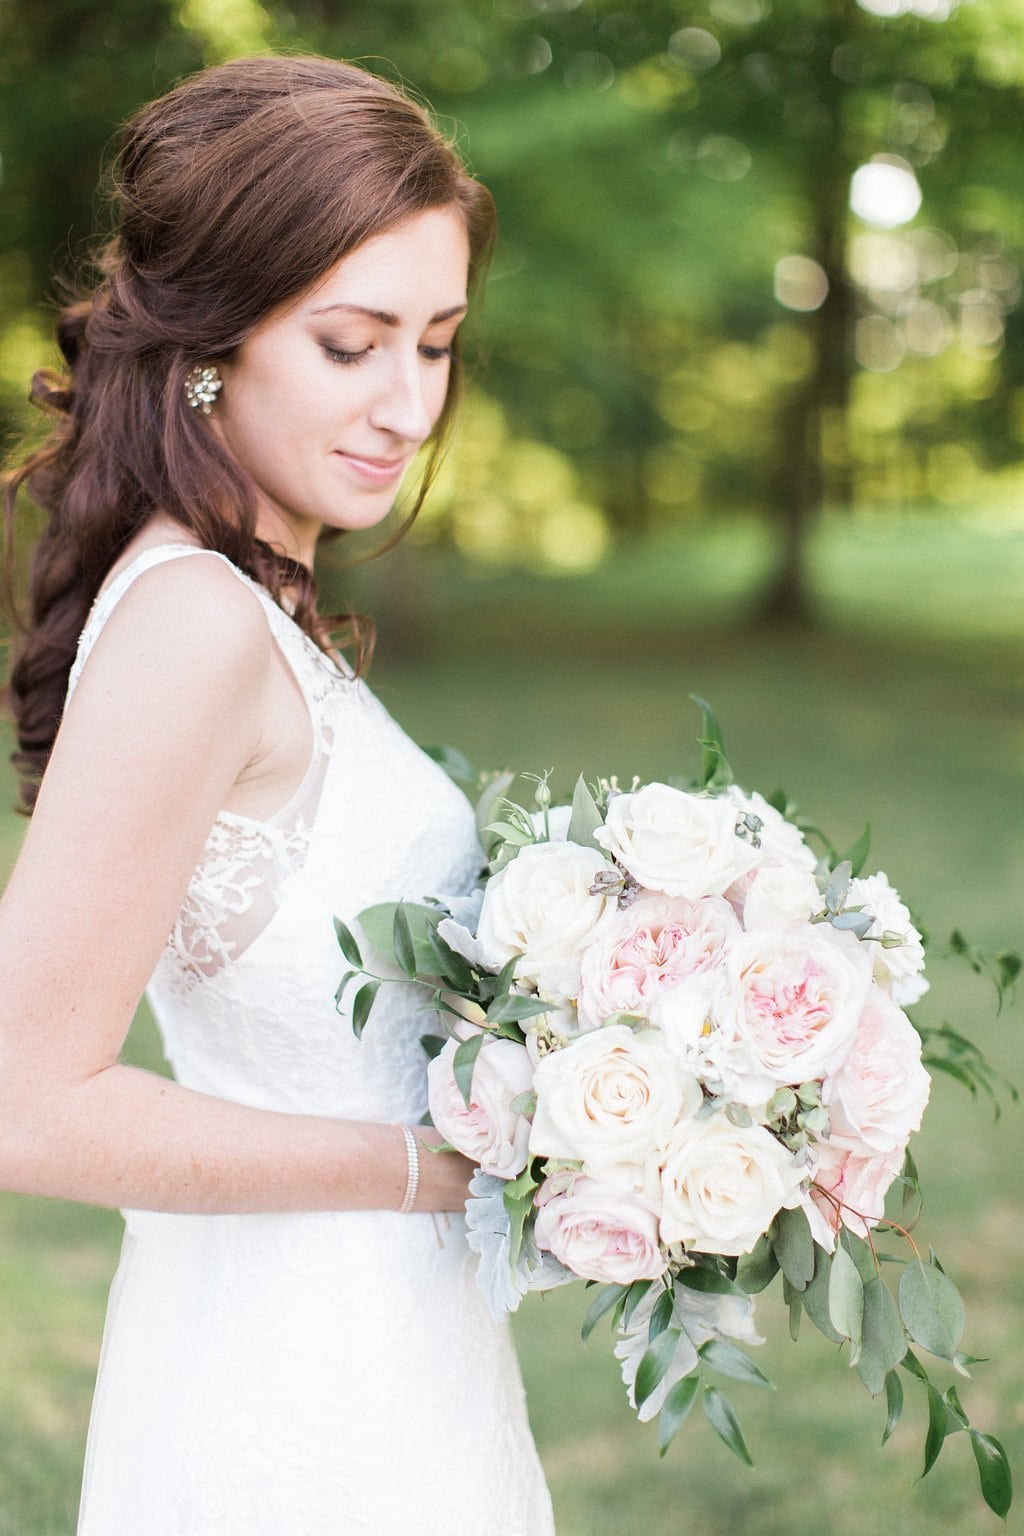 Portrait of brie holding bouquet and looking down at the flowers